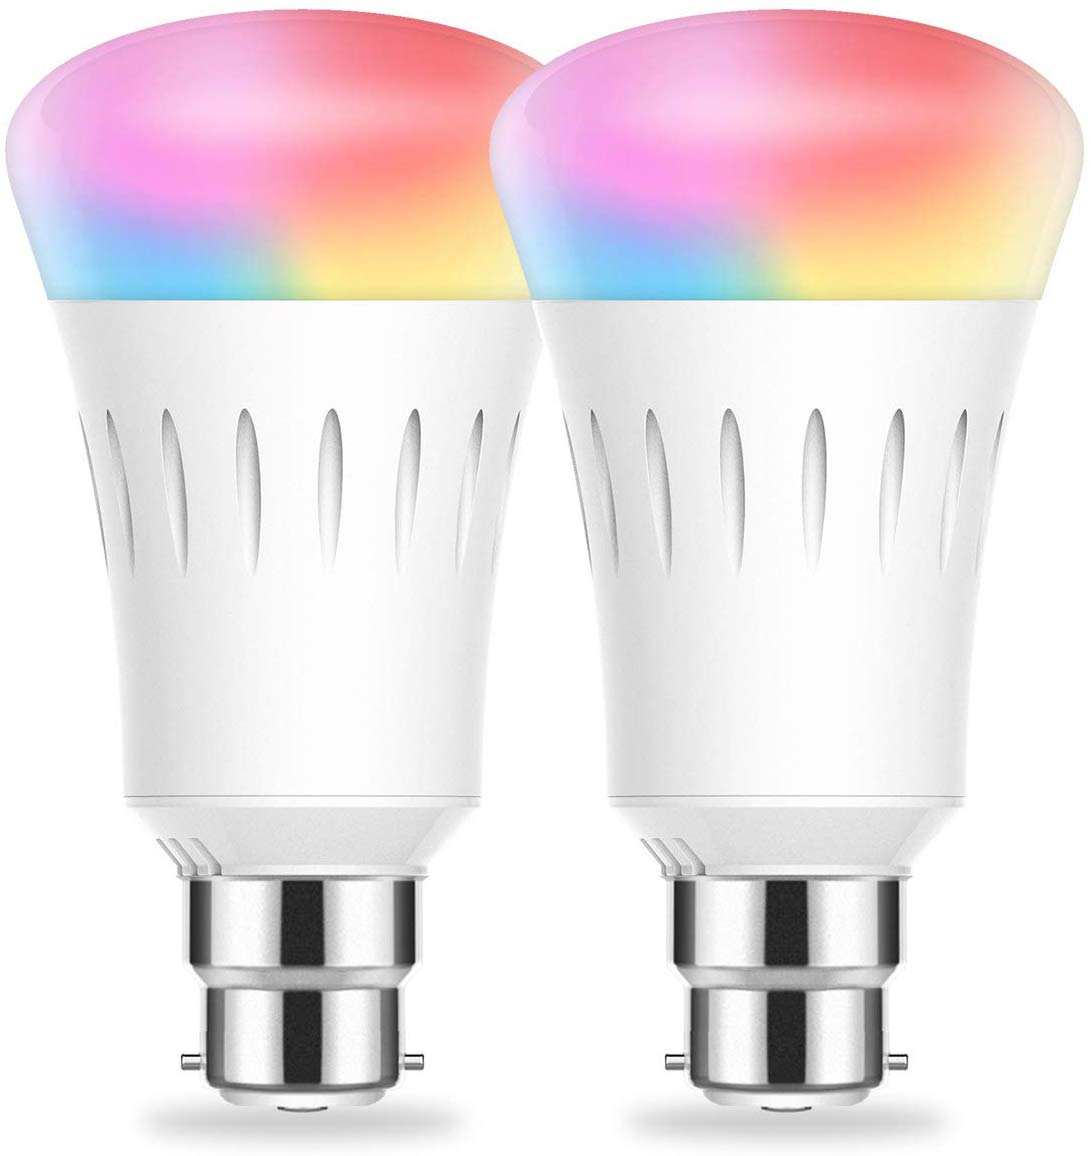 WiFi Smart B22 Bayonet Bulbs, Alexa Light Bulb, 2 Pack